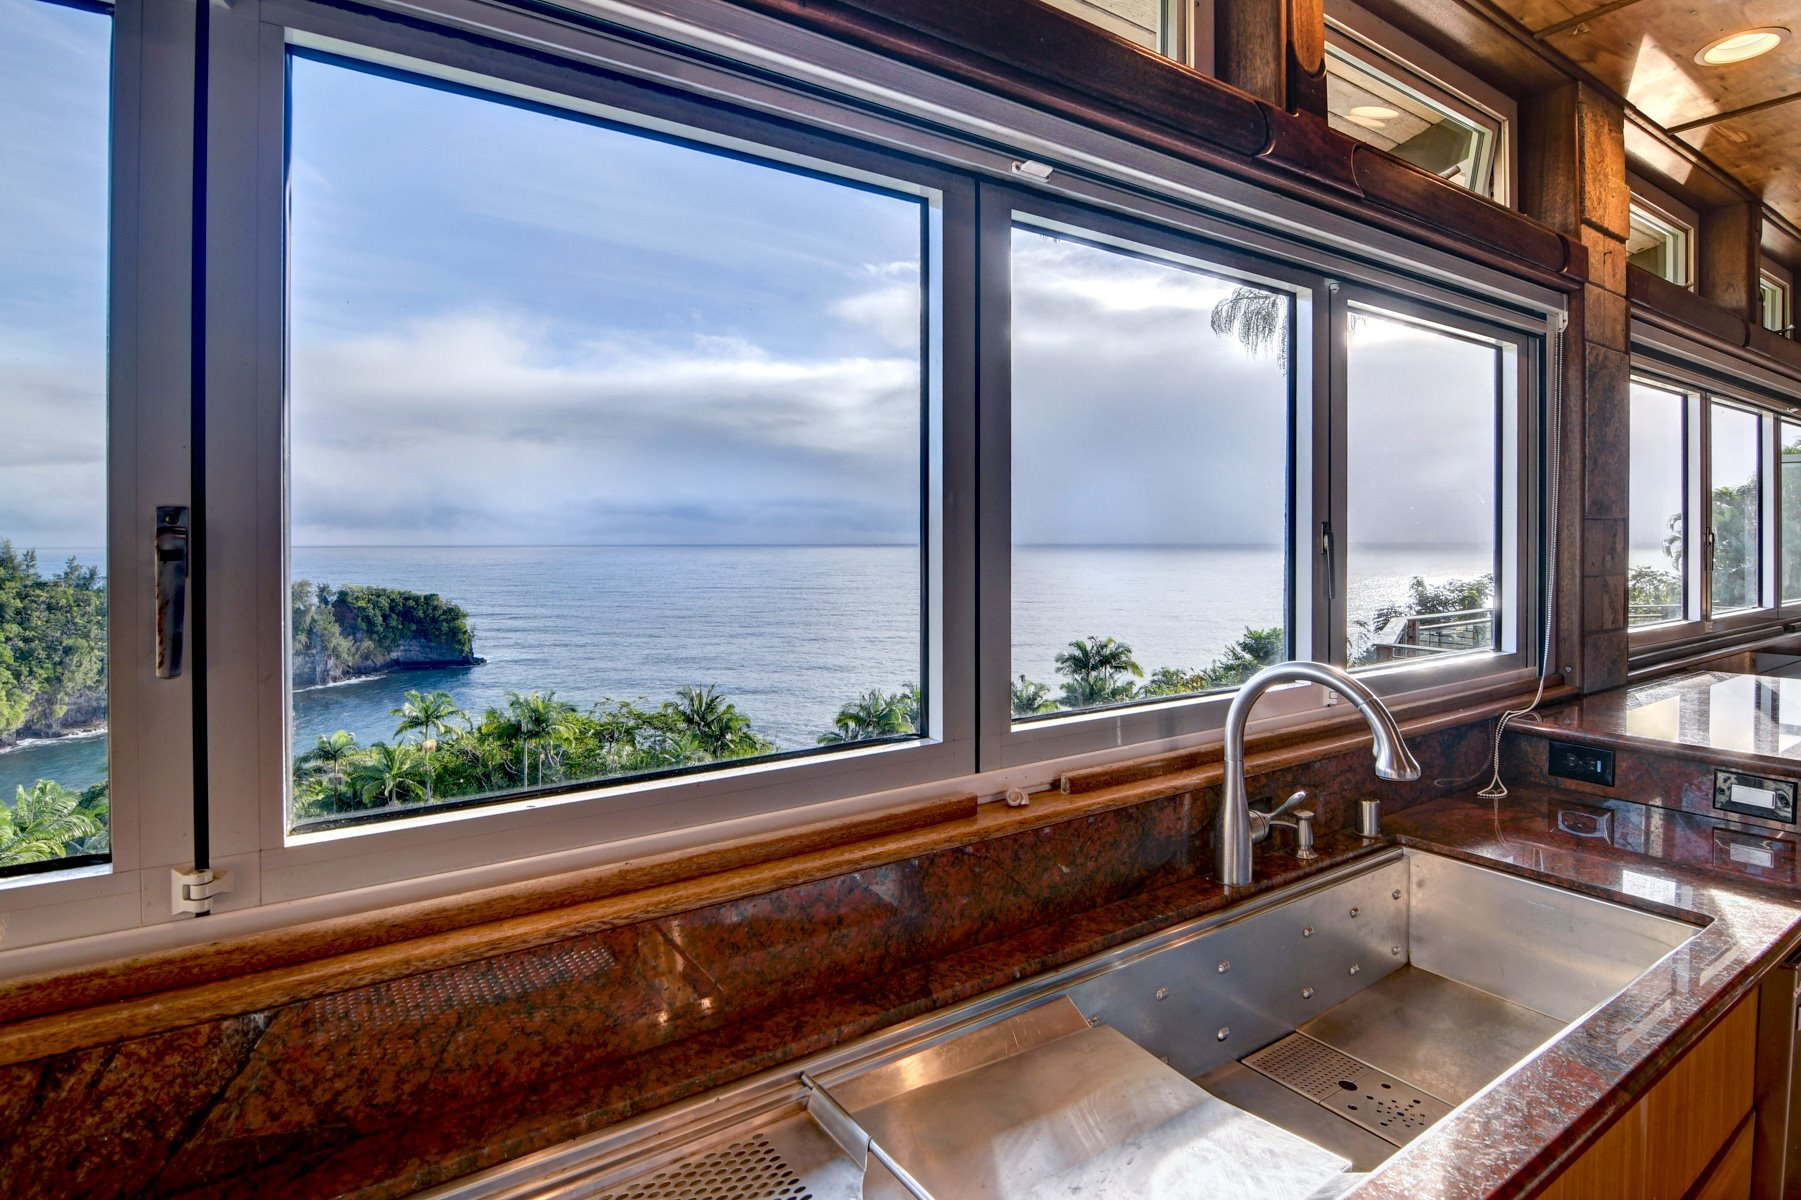 View of Onomea Bay from the main kitchen sink.